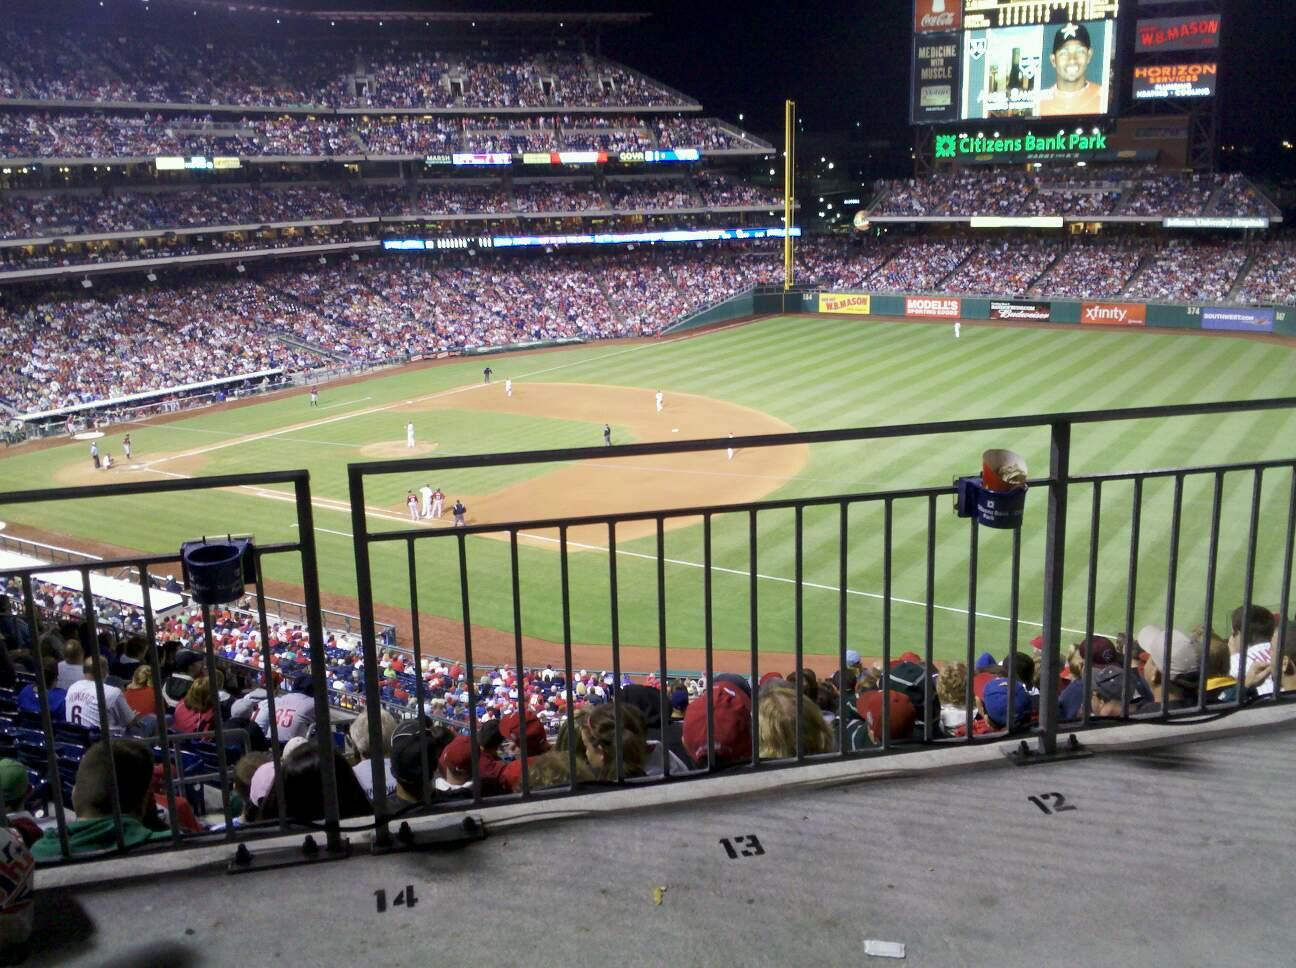 Citizens Bank Park Section 210 Row 12 Seat 14